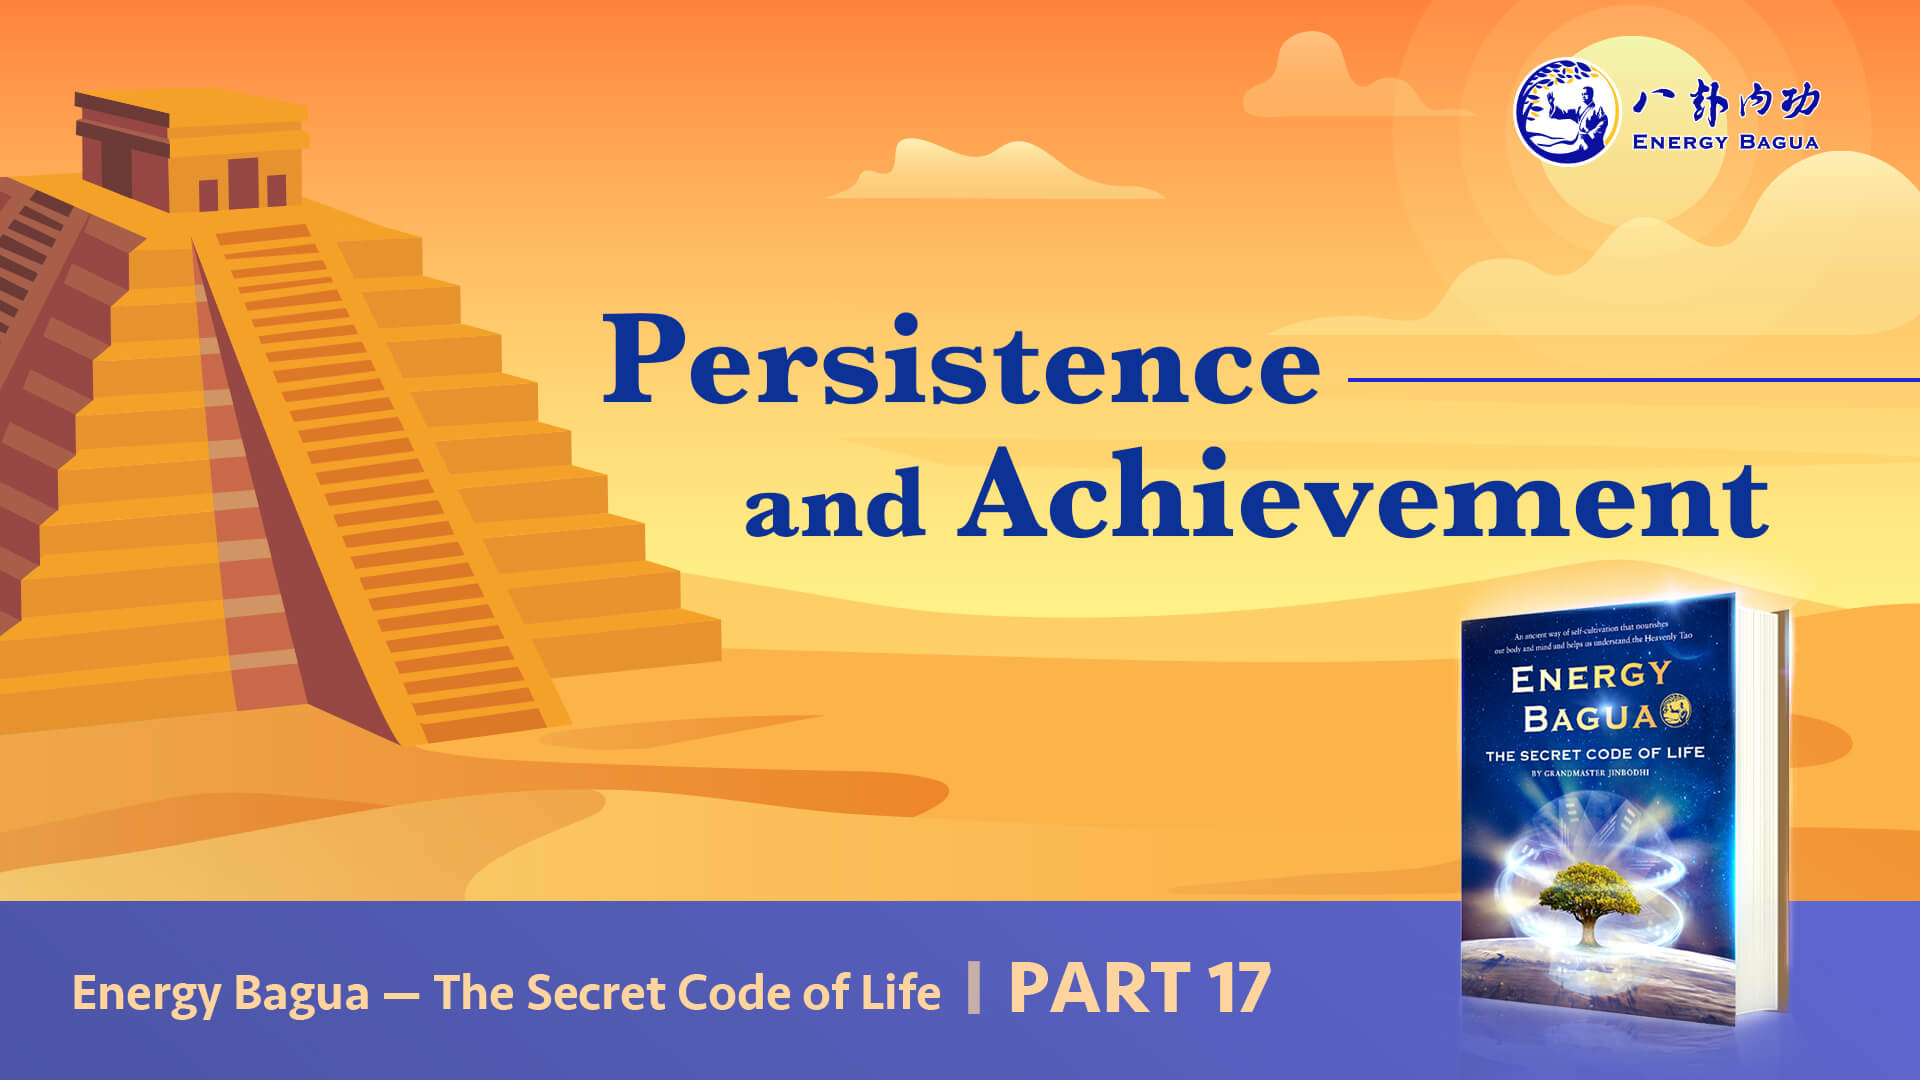 Energy Bagua - The Secret Code of Life Part 17: Persistence and Achievement